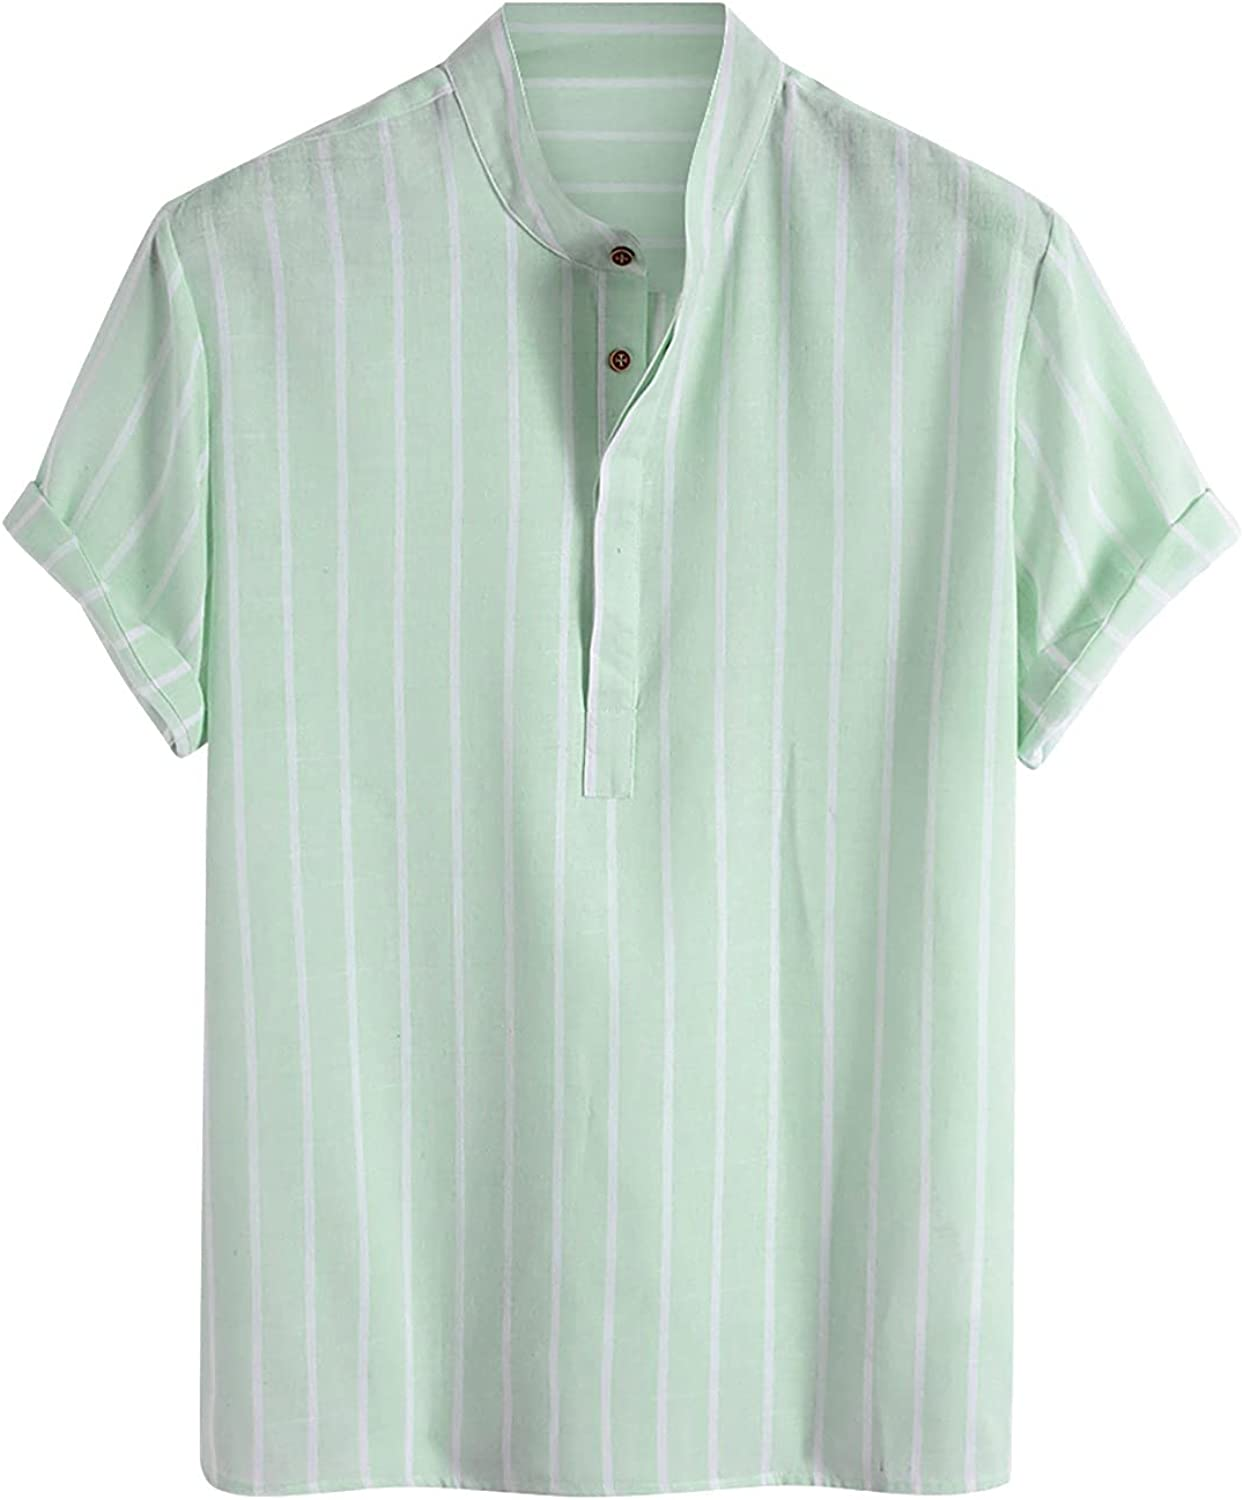 FUNEY Men's Vertical Striped Short Sleeve Shirts Fashion V Neck Hippie Shirts Vintage Business Henley Lapel Tees Casual Tops